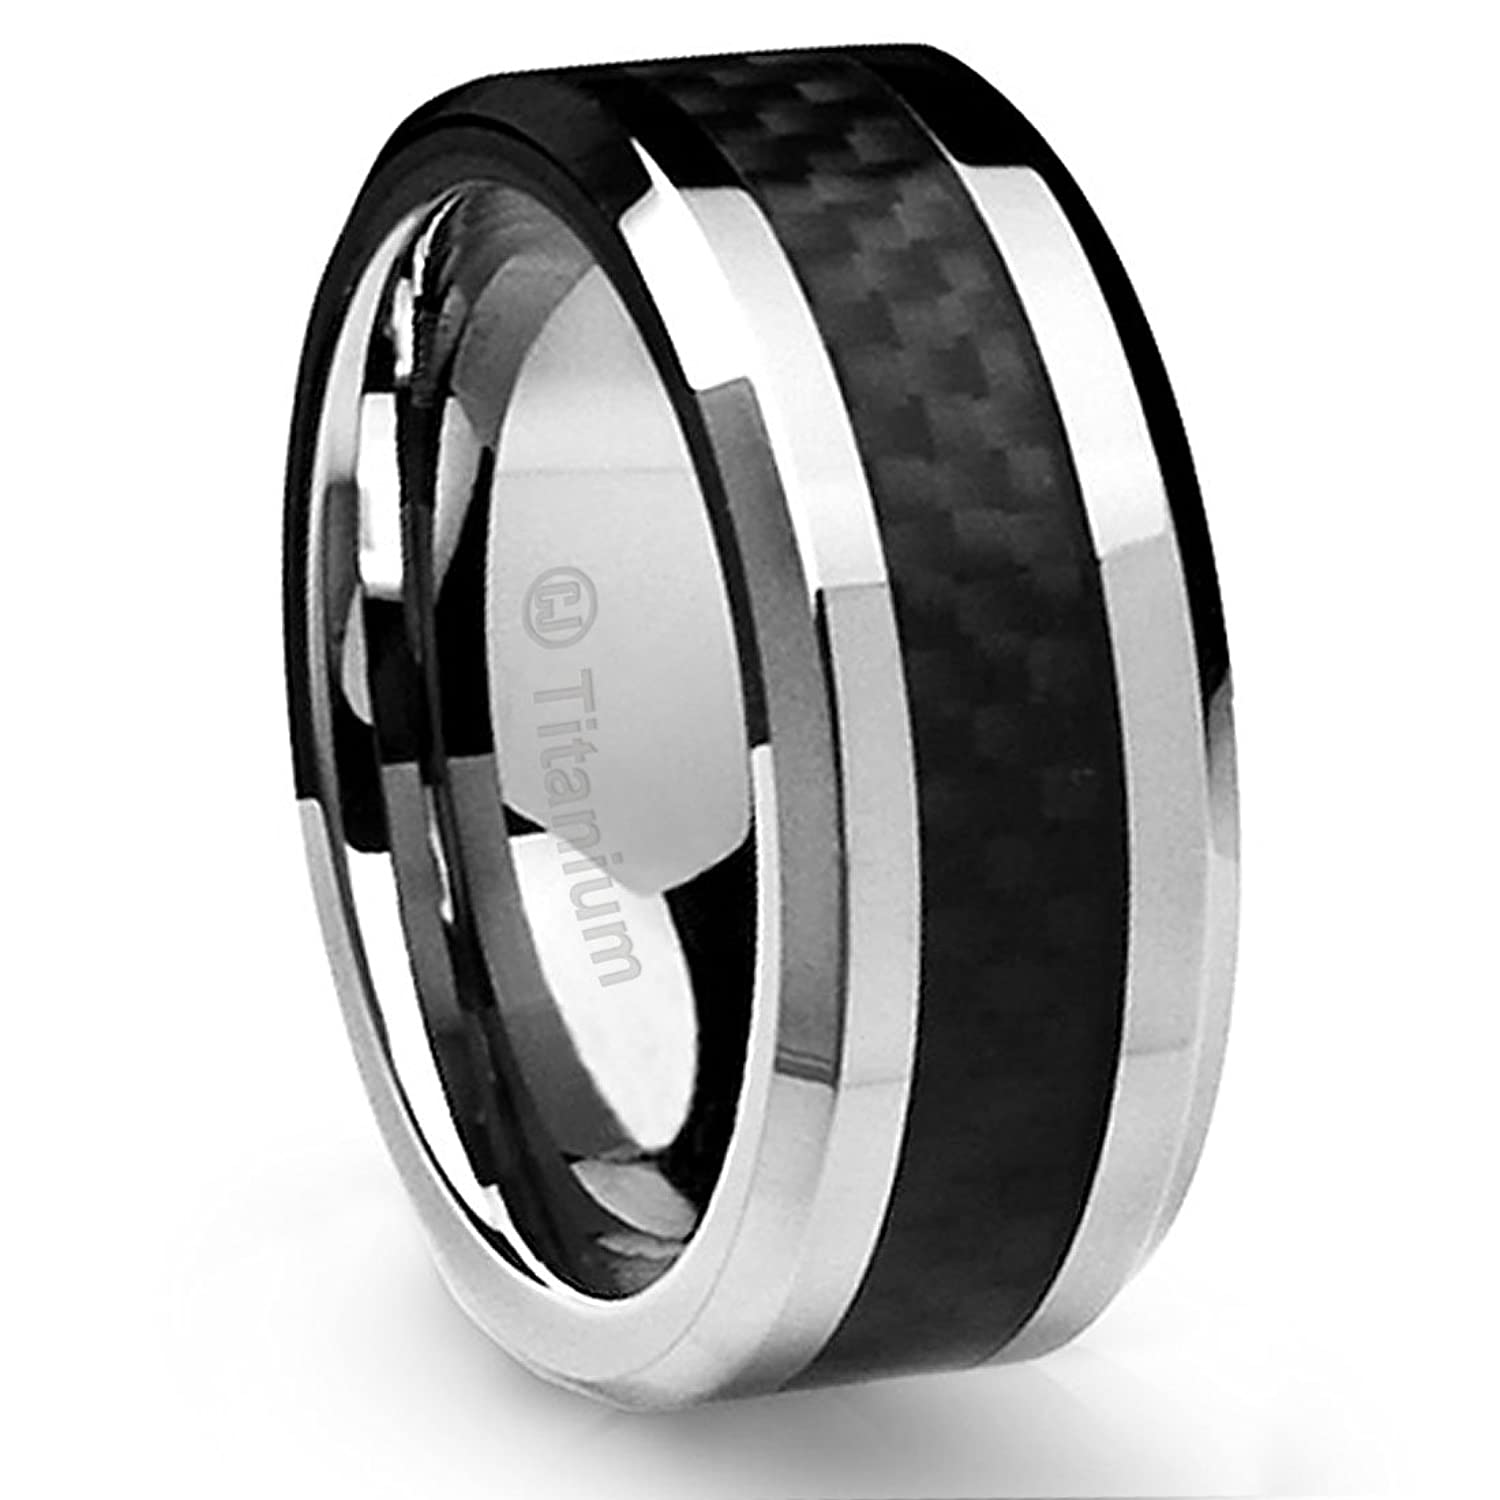 ring rings andreasen en engagement fiber kultasep carbon wedding kauppa t